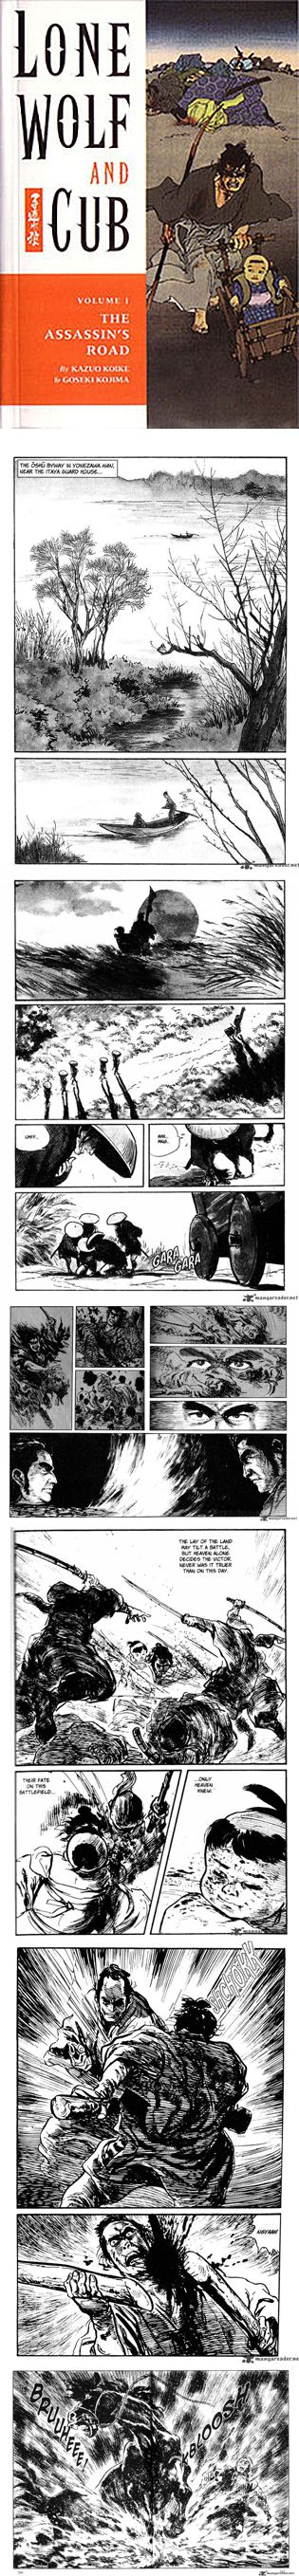 """Lone Wolf and Cub chronicles the story of Ogami Ittō, the Shogun's executioner. Disgraced by false accusations, he is forced to take the path of the assassin. Along with his three-year-old son, Daigorō, they seek revenge on the Yagyū clan and are known as """"Lone Wolf and Cub"""". Created by writer Kazuo Koike and artist Goseki Kojima. First published in 1970, the story was adapted into six films."""